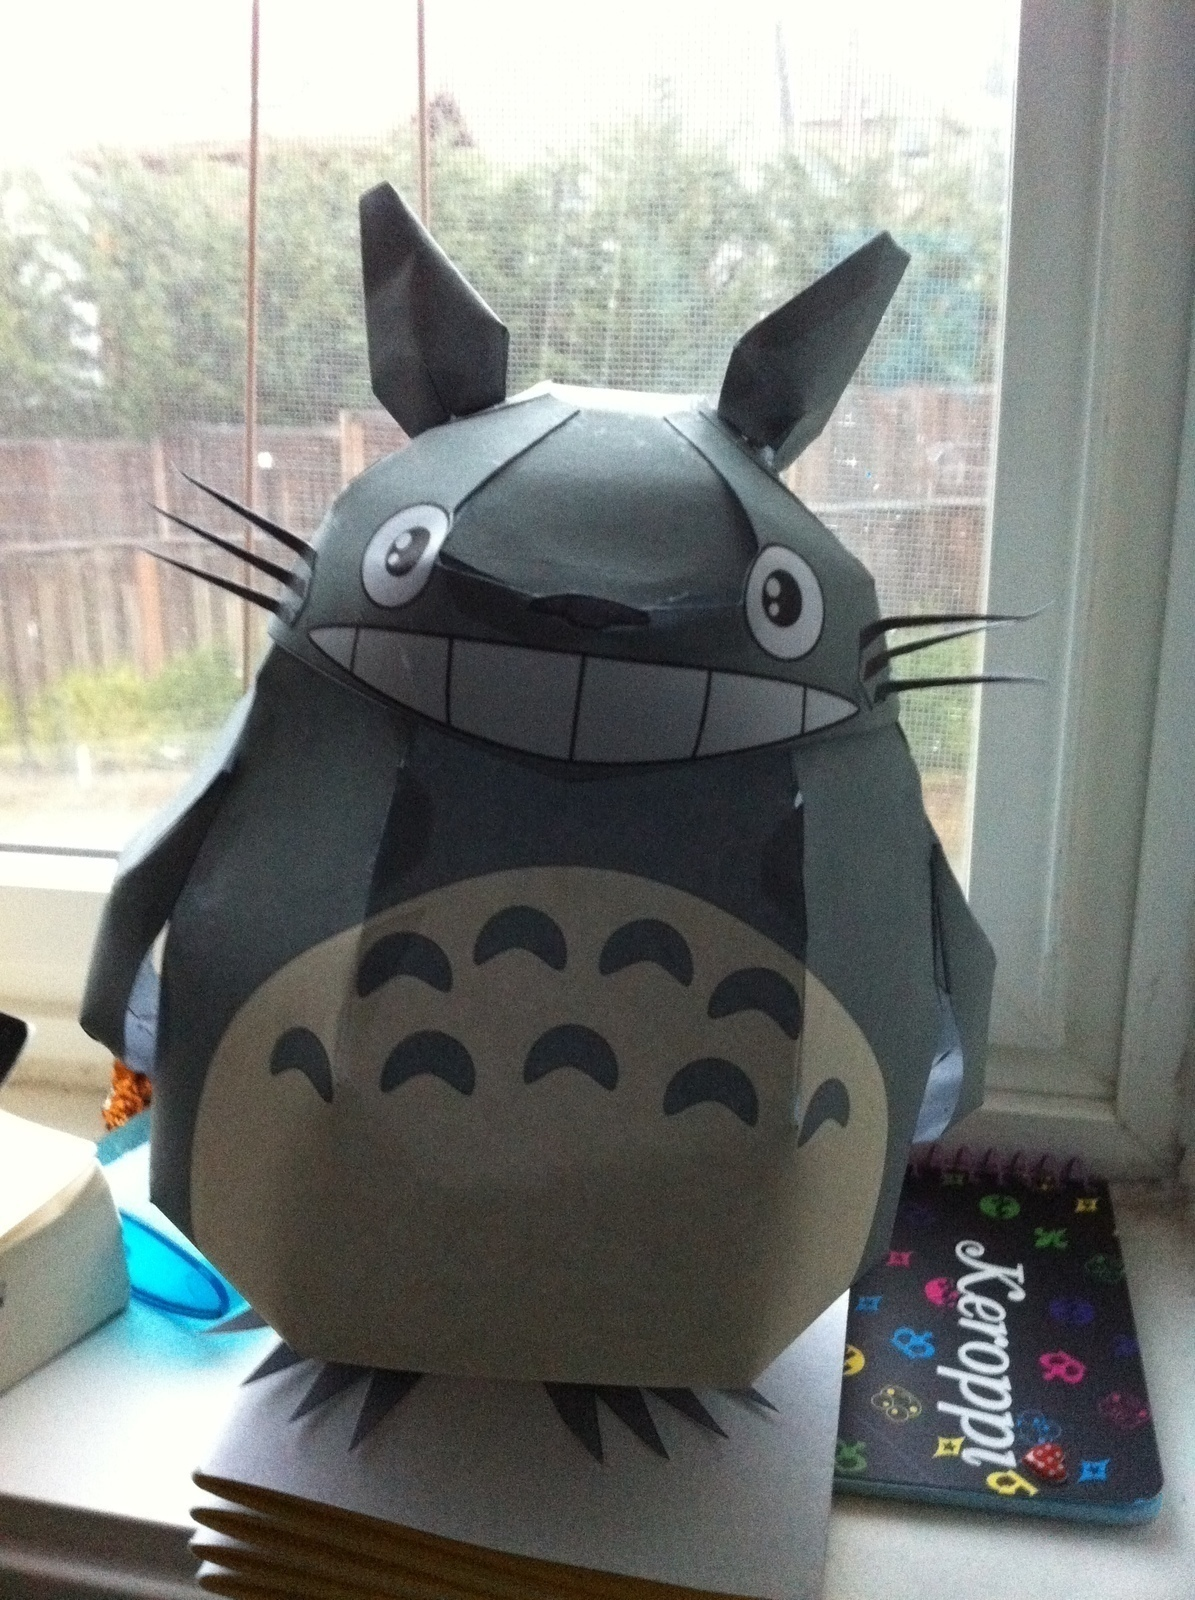 totoro paper craft  u00b7 an origami animal  u00b7 papercraft  paper